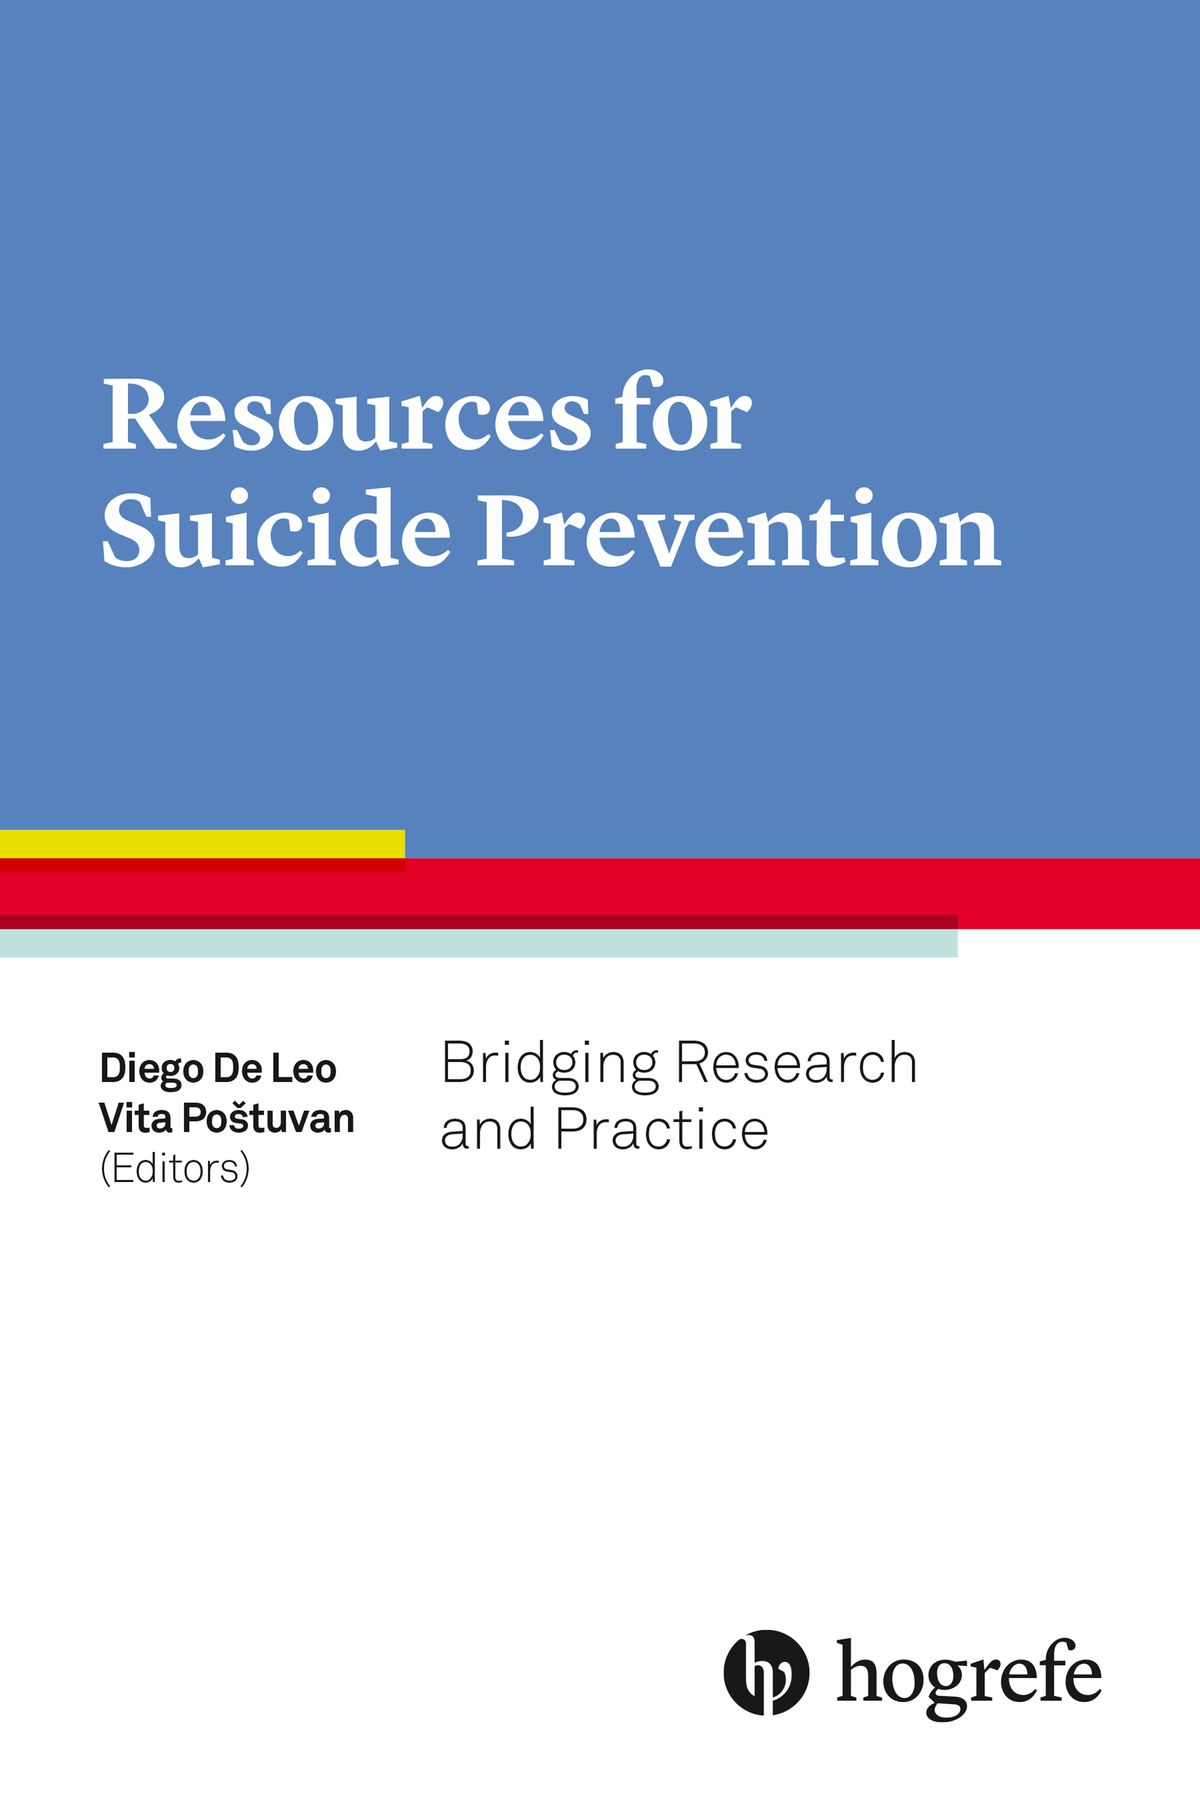 Resources for Suicide Prevention